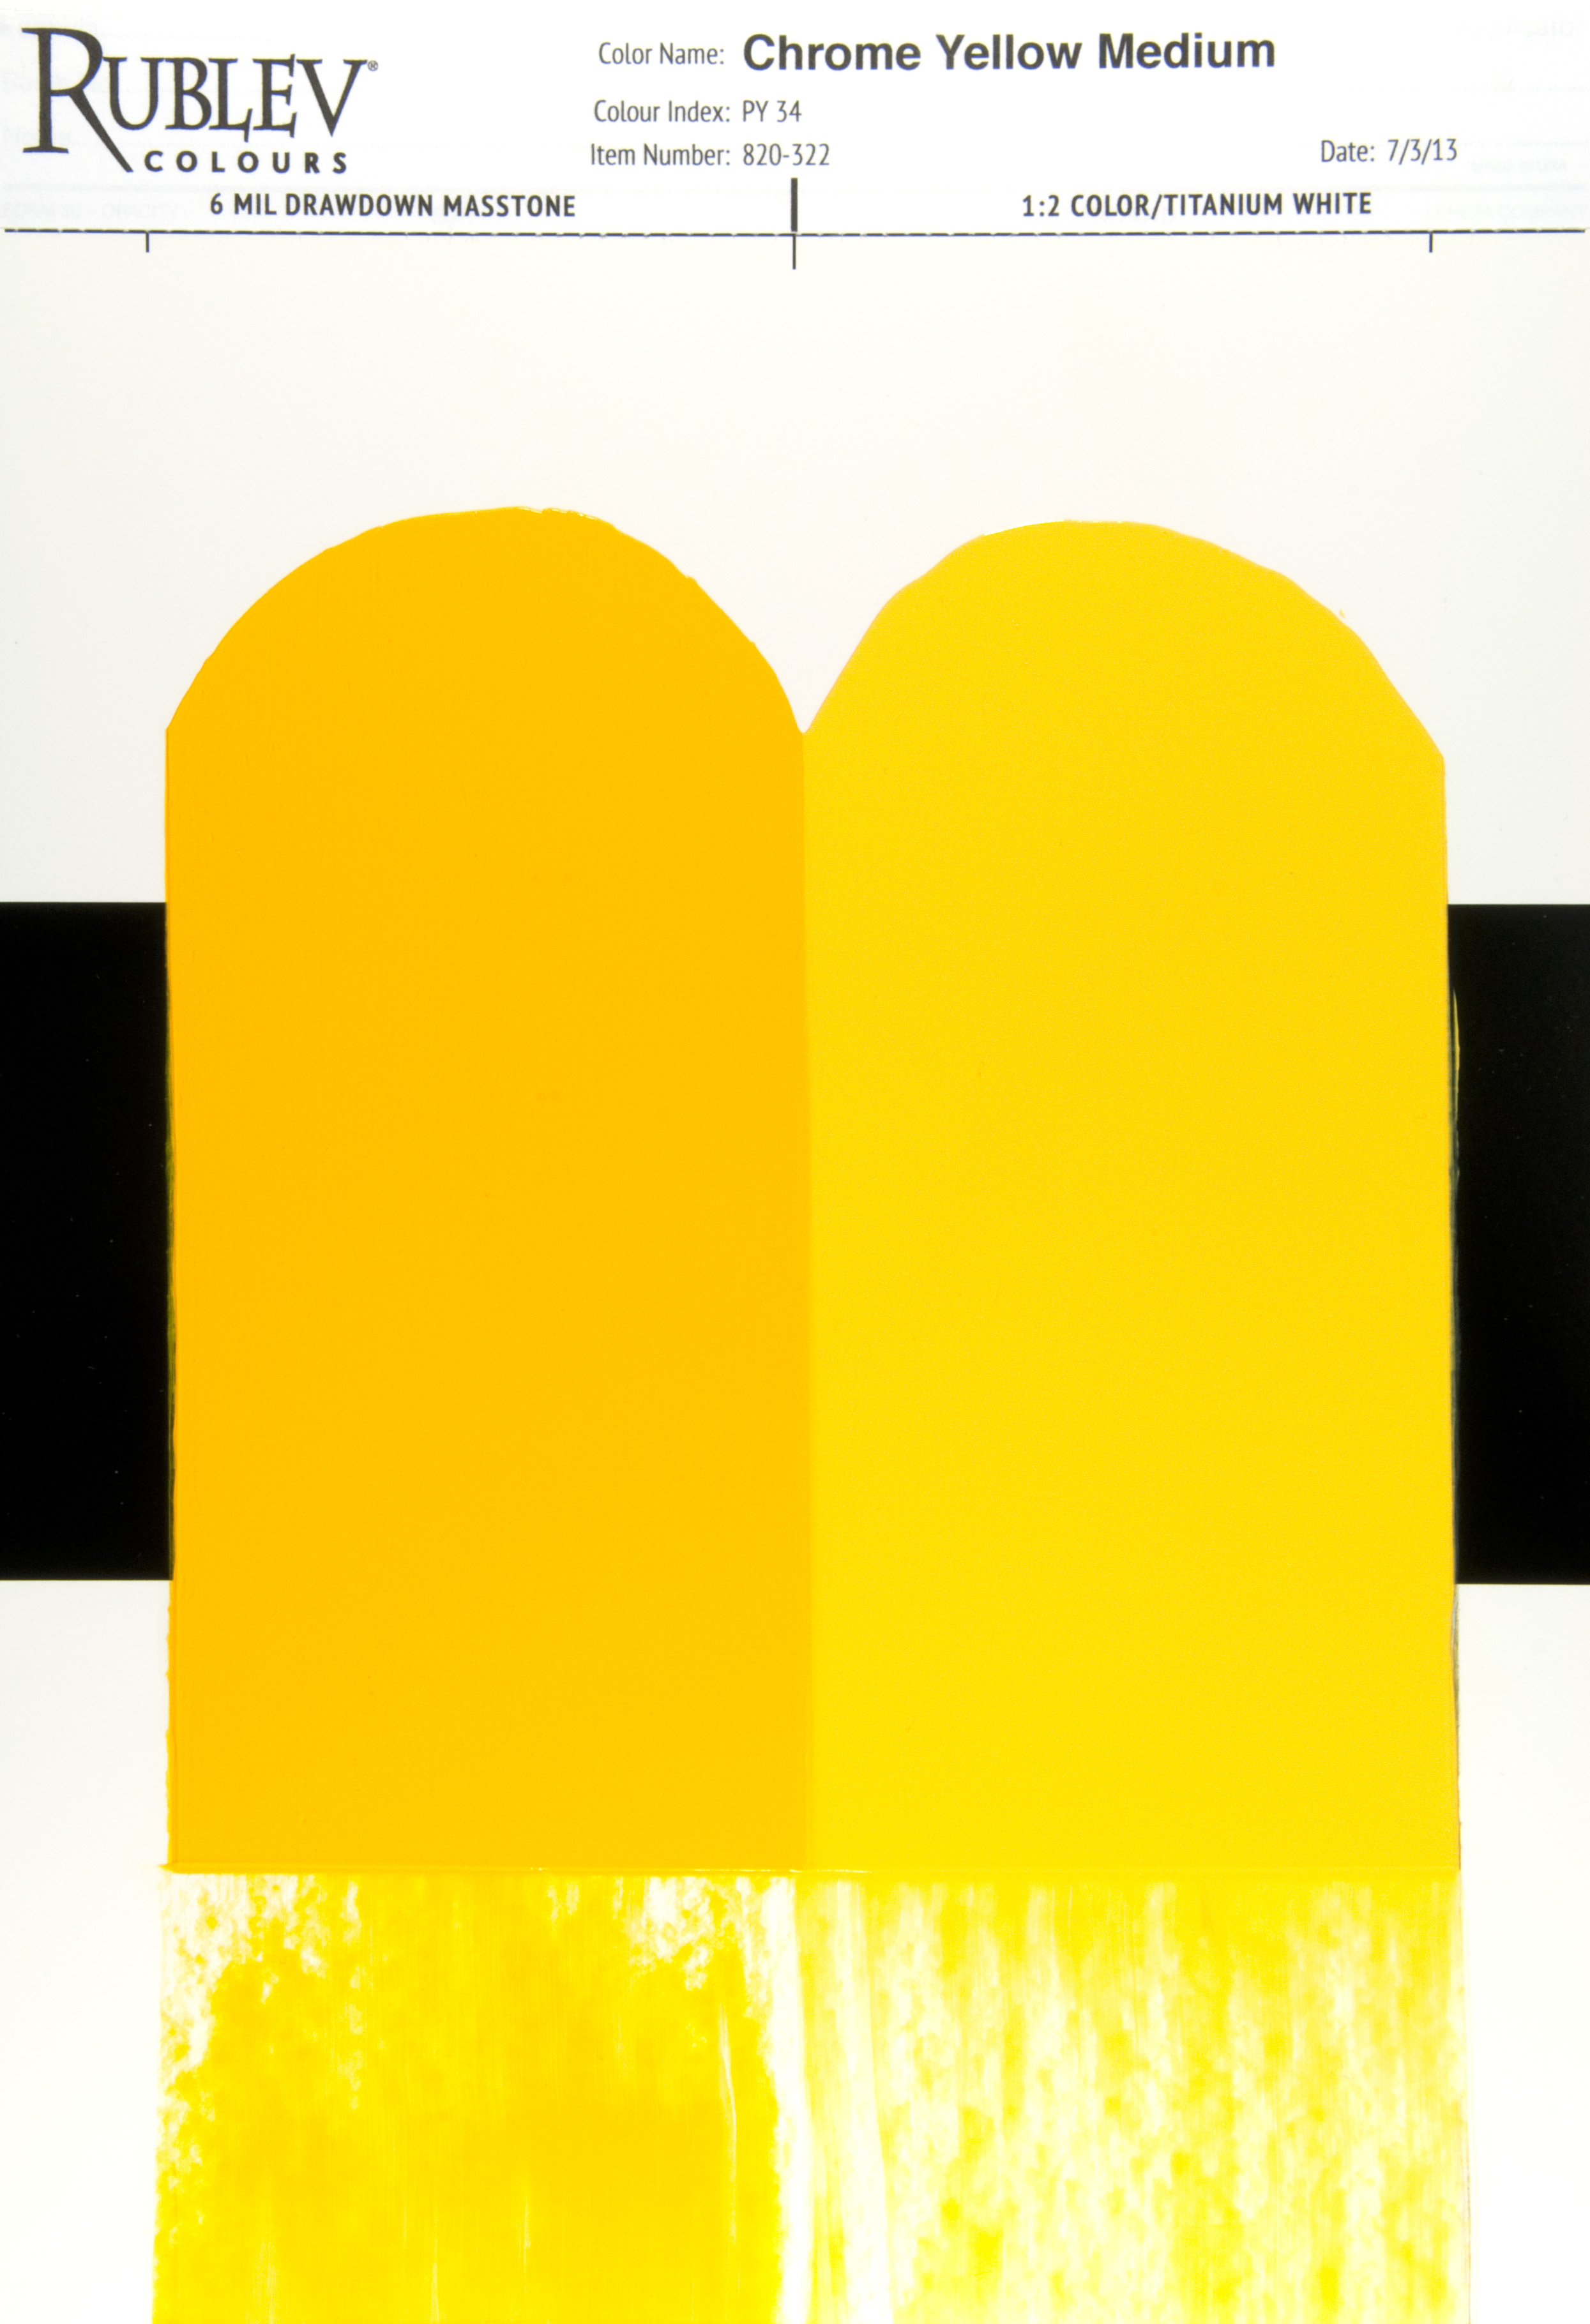 Shades Of Yellow Names artists materials - chrome yellow: a primary color with a brief